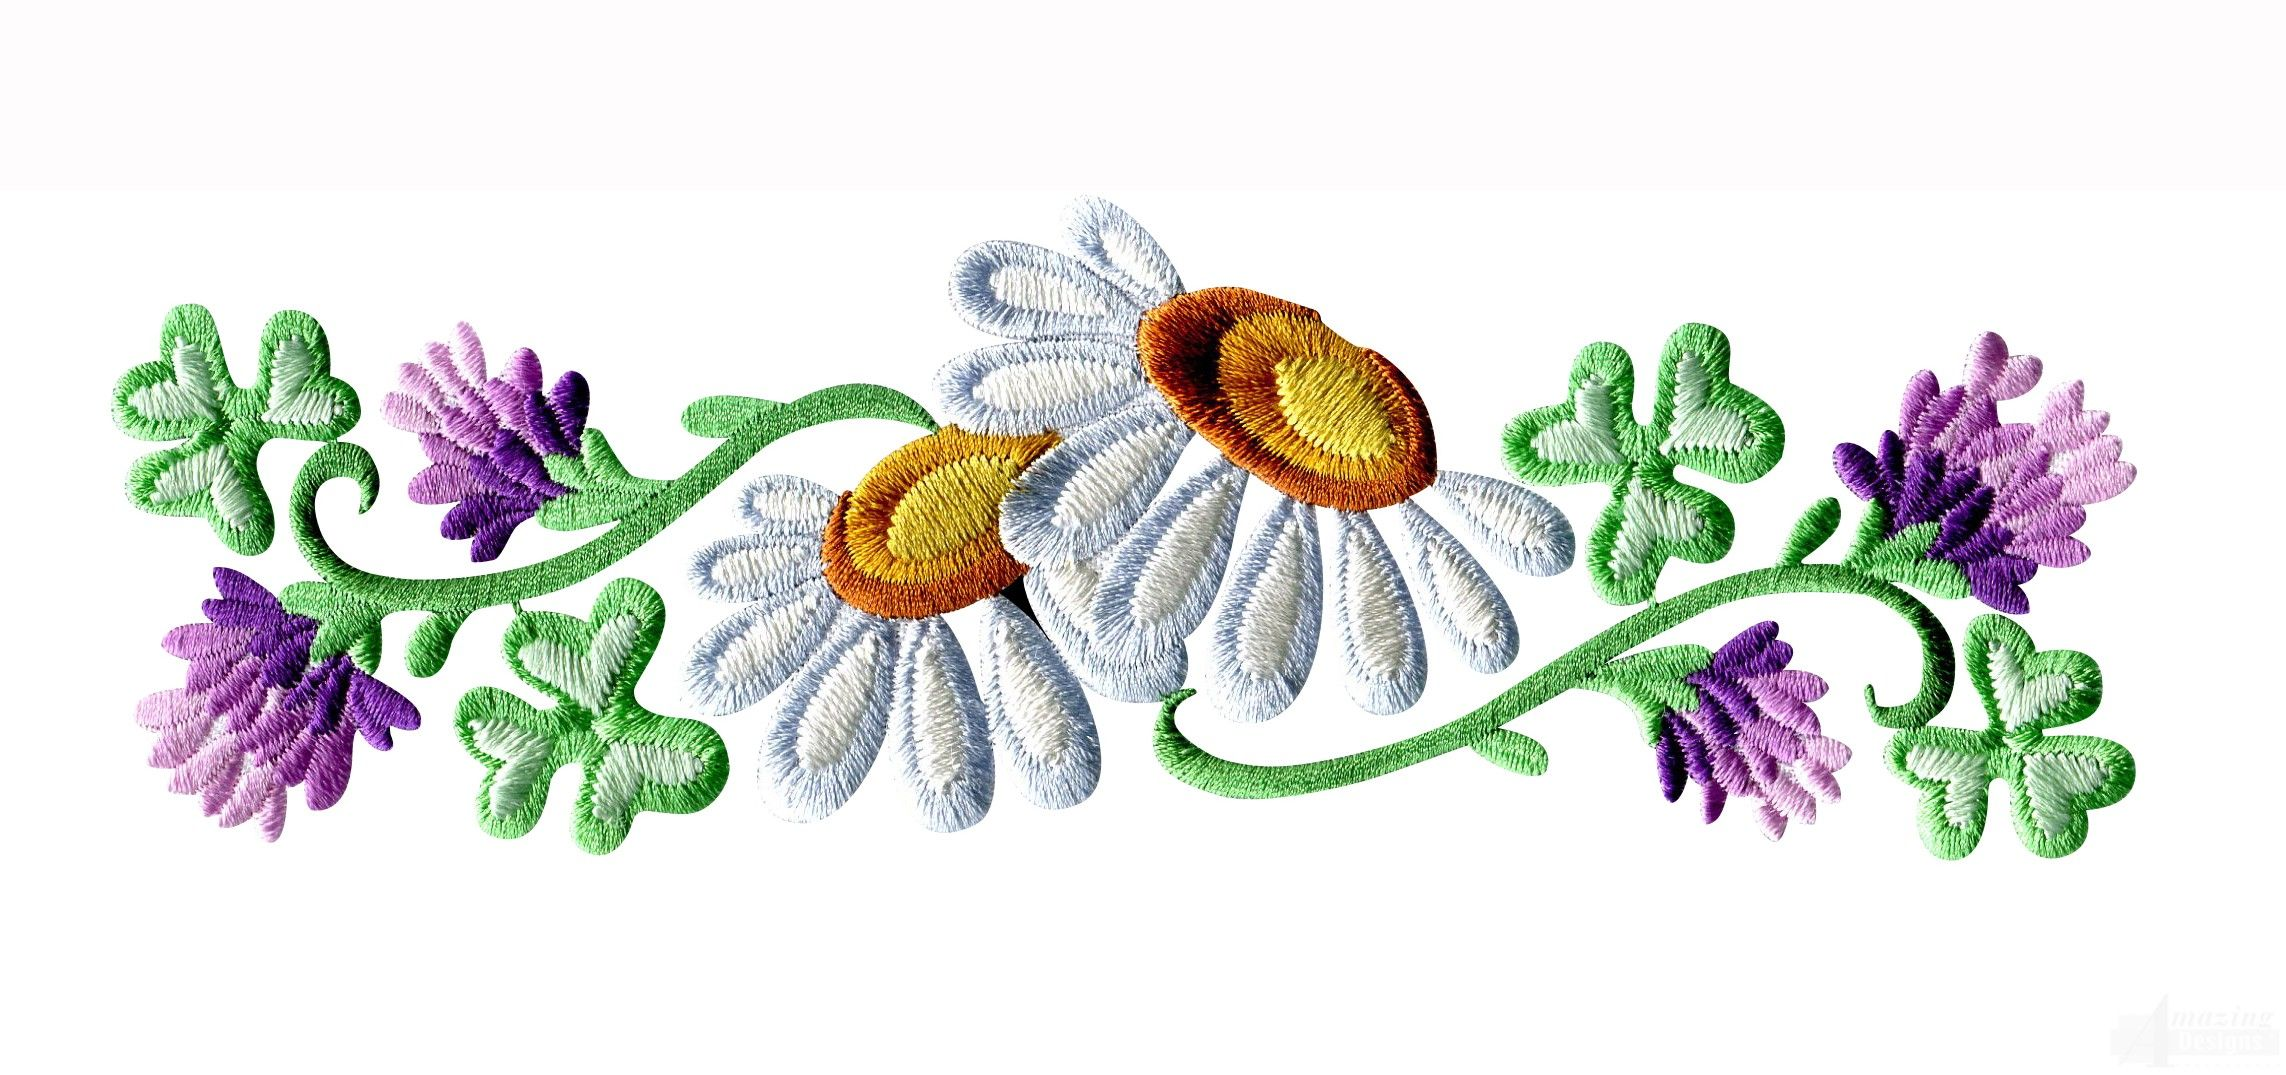 Flower Hand Embroidery Designs Free Download: Embroidery Borders Designs - Google Search